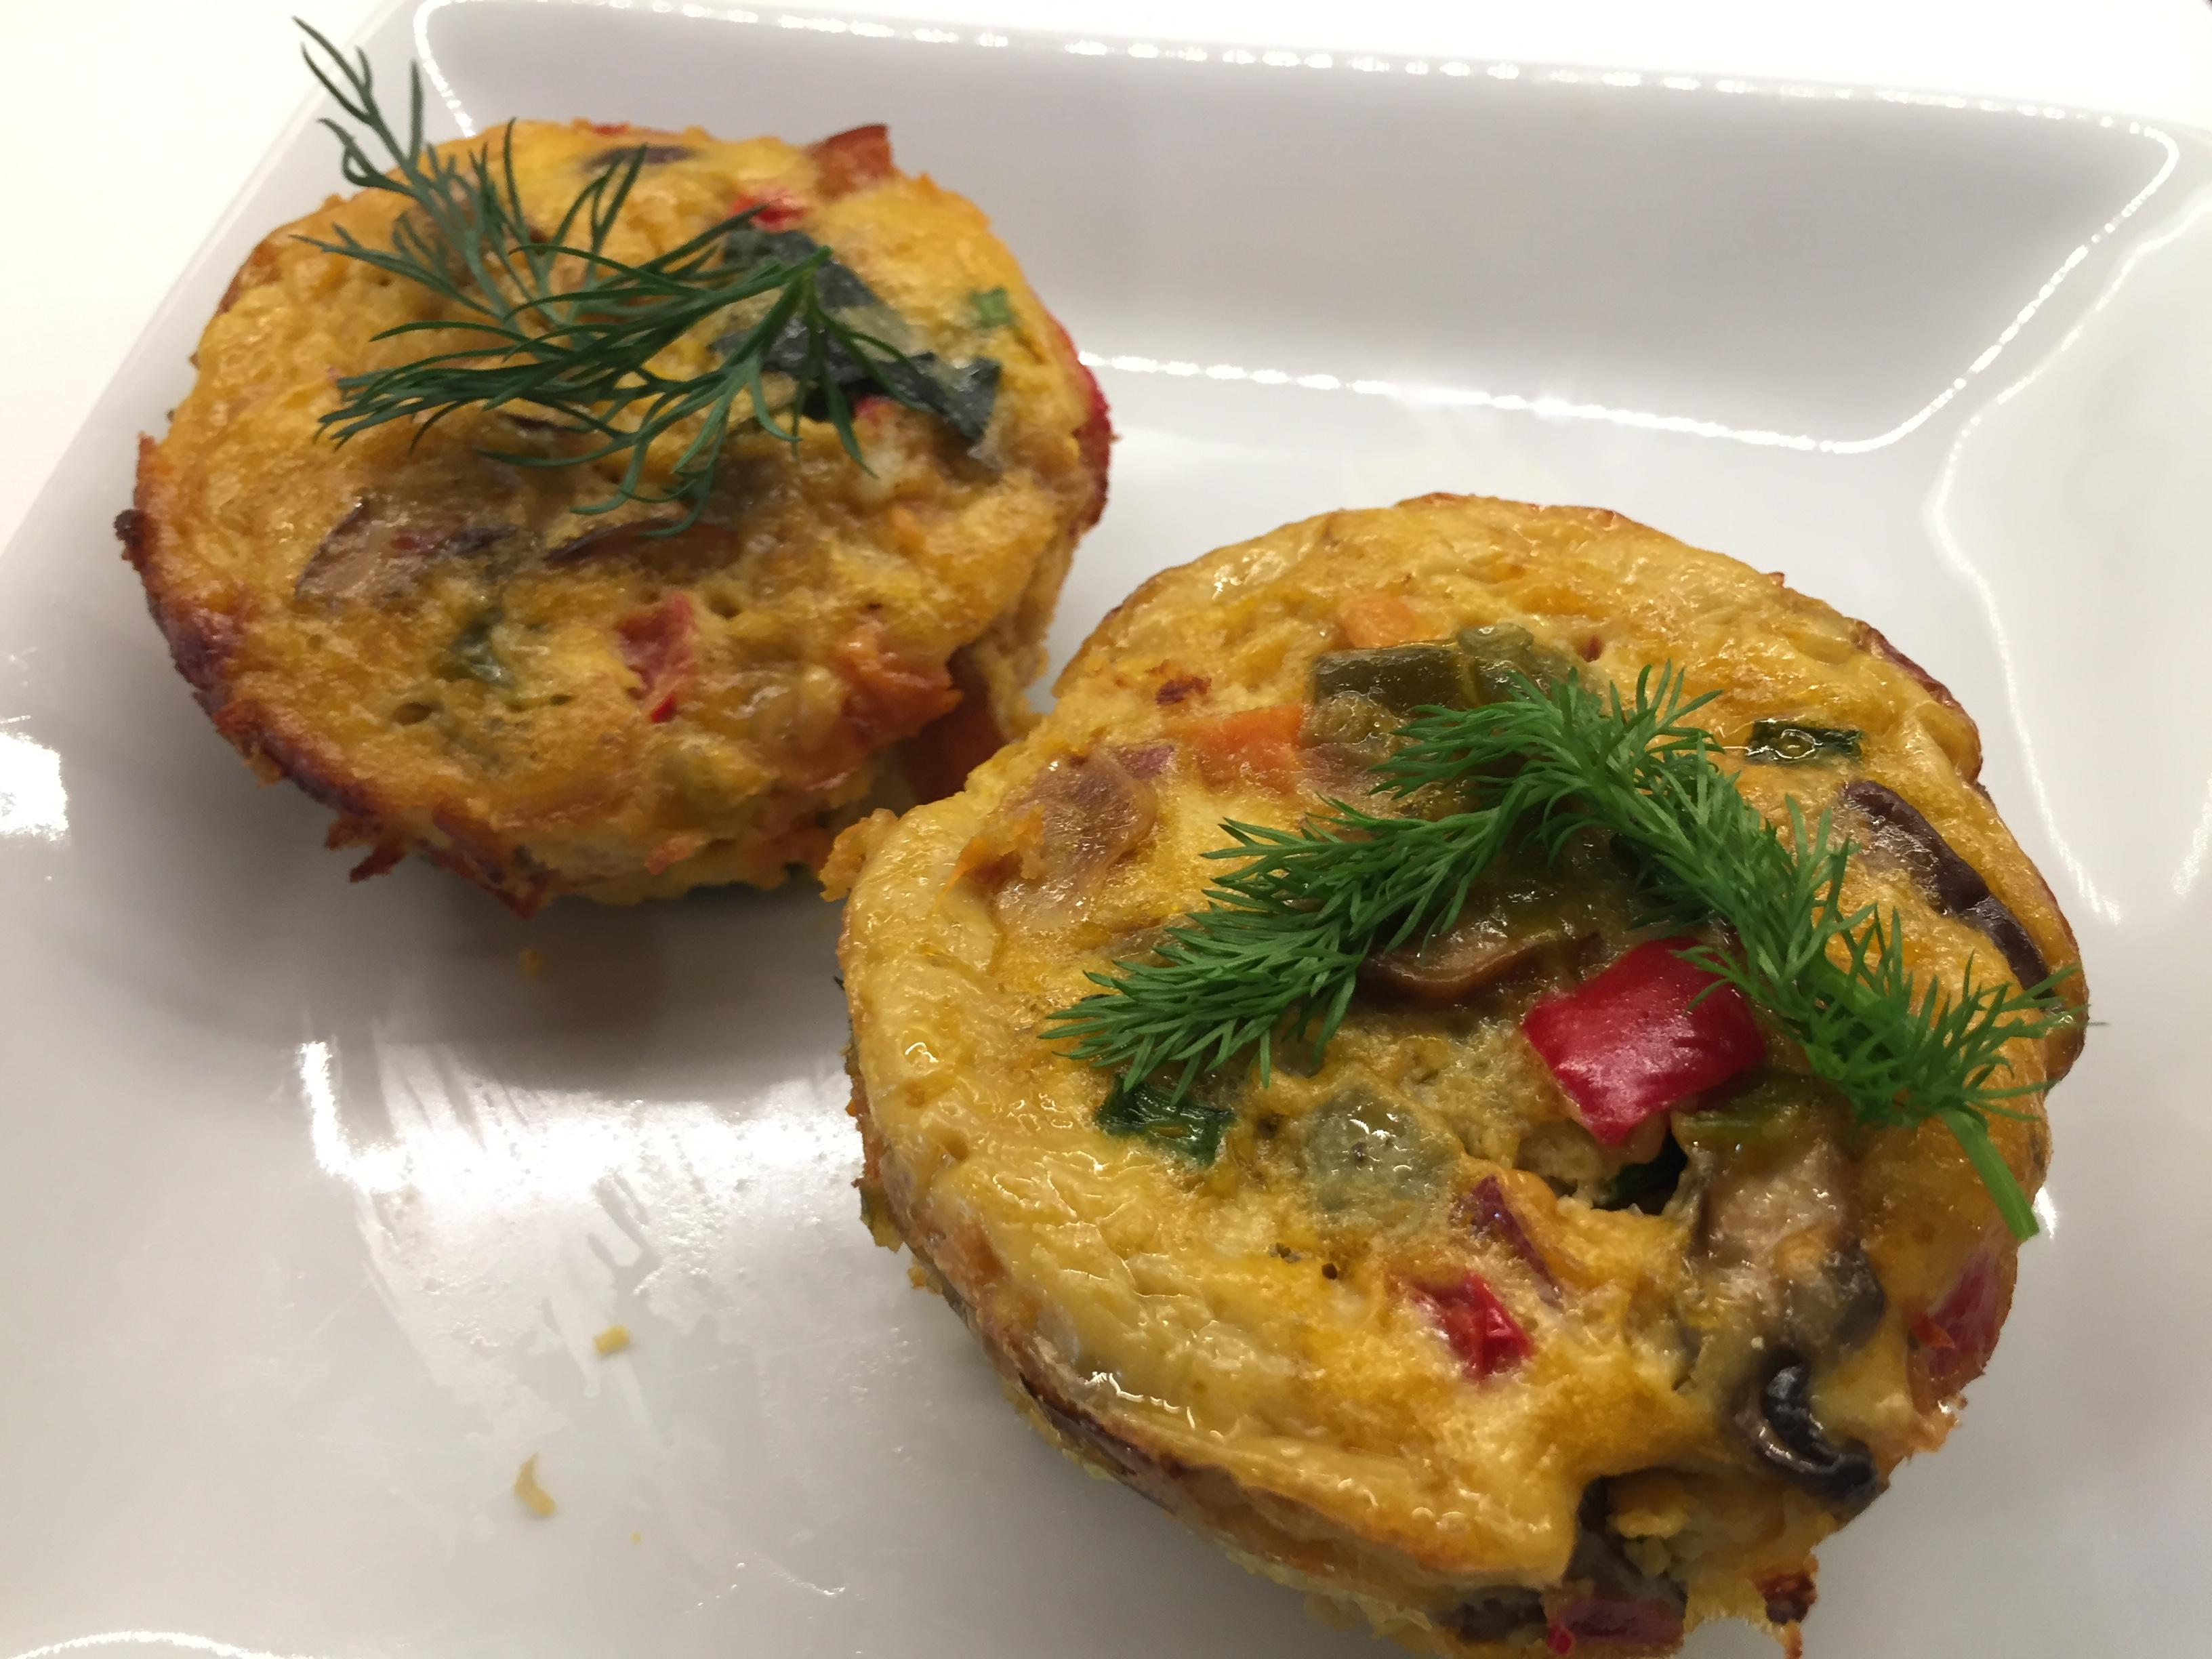 Breakfast Egg Muffins with Sprigs of Dill